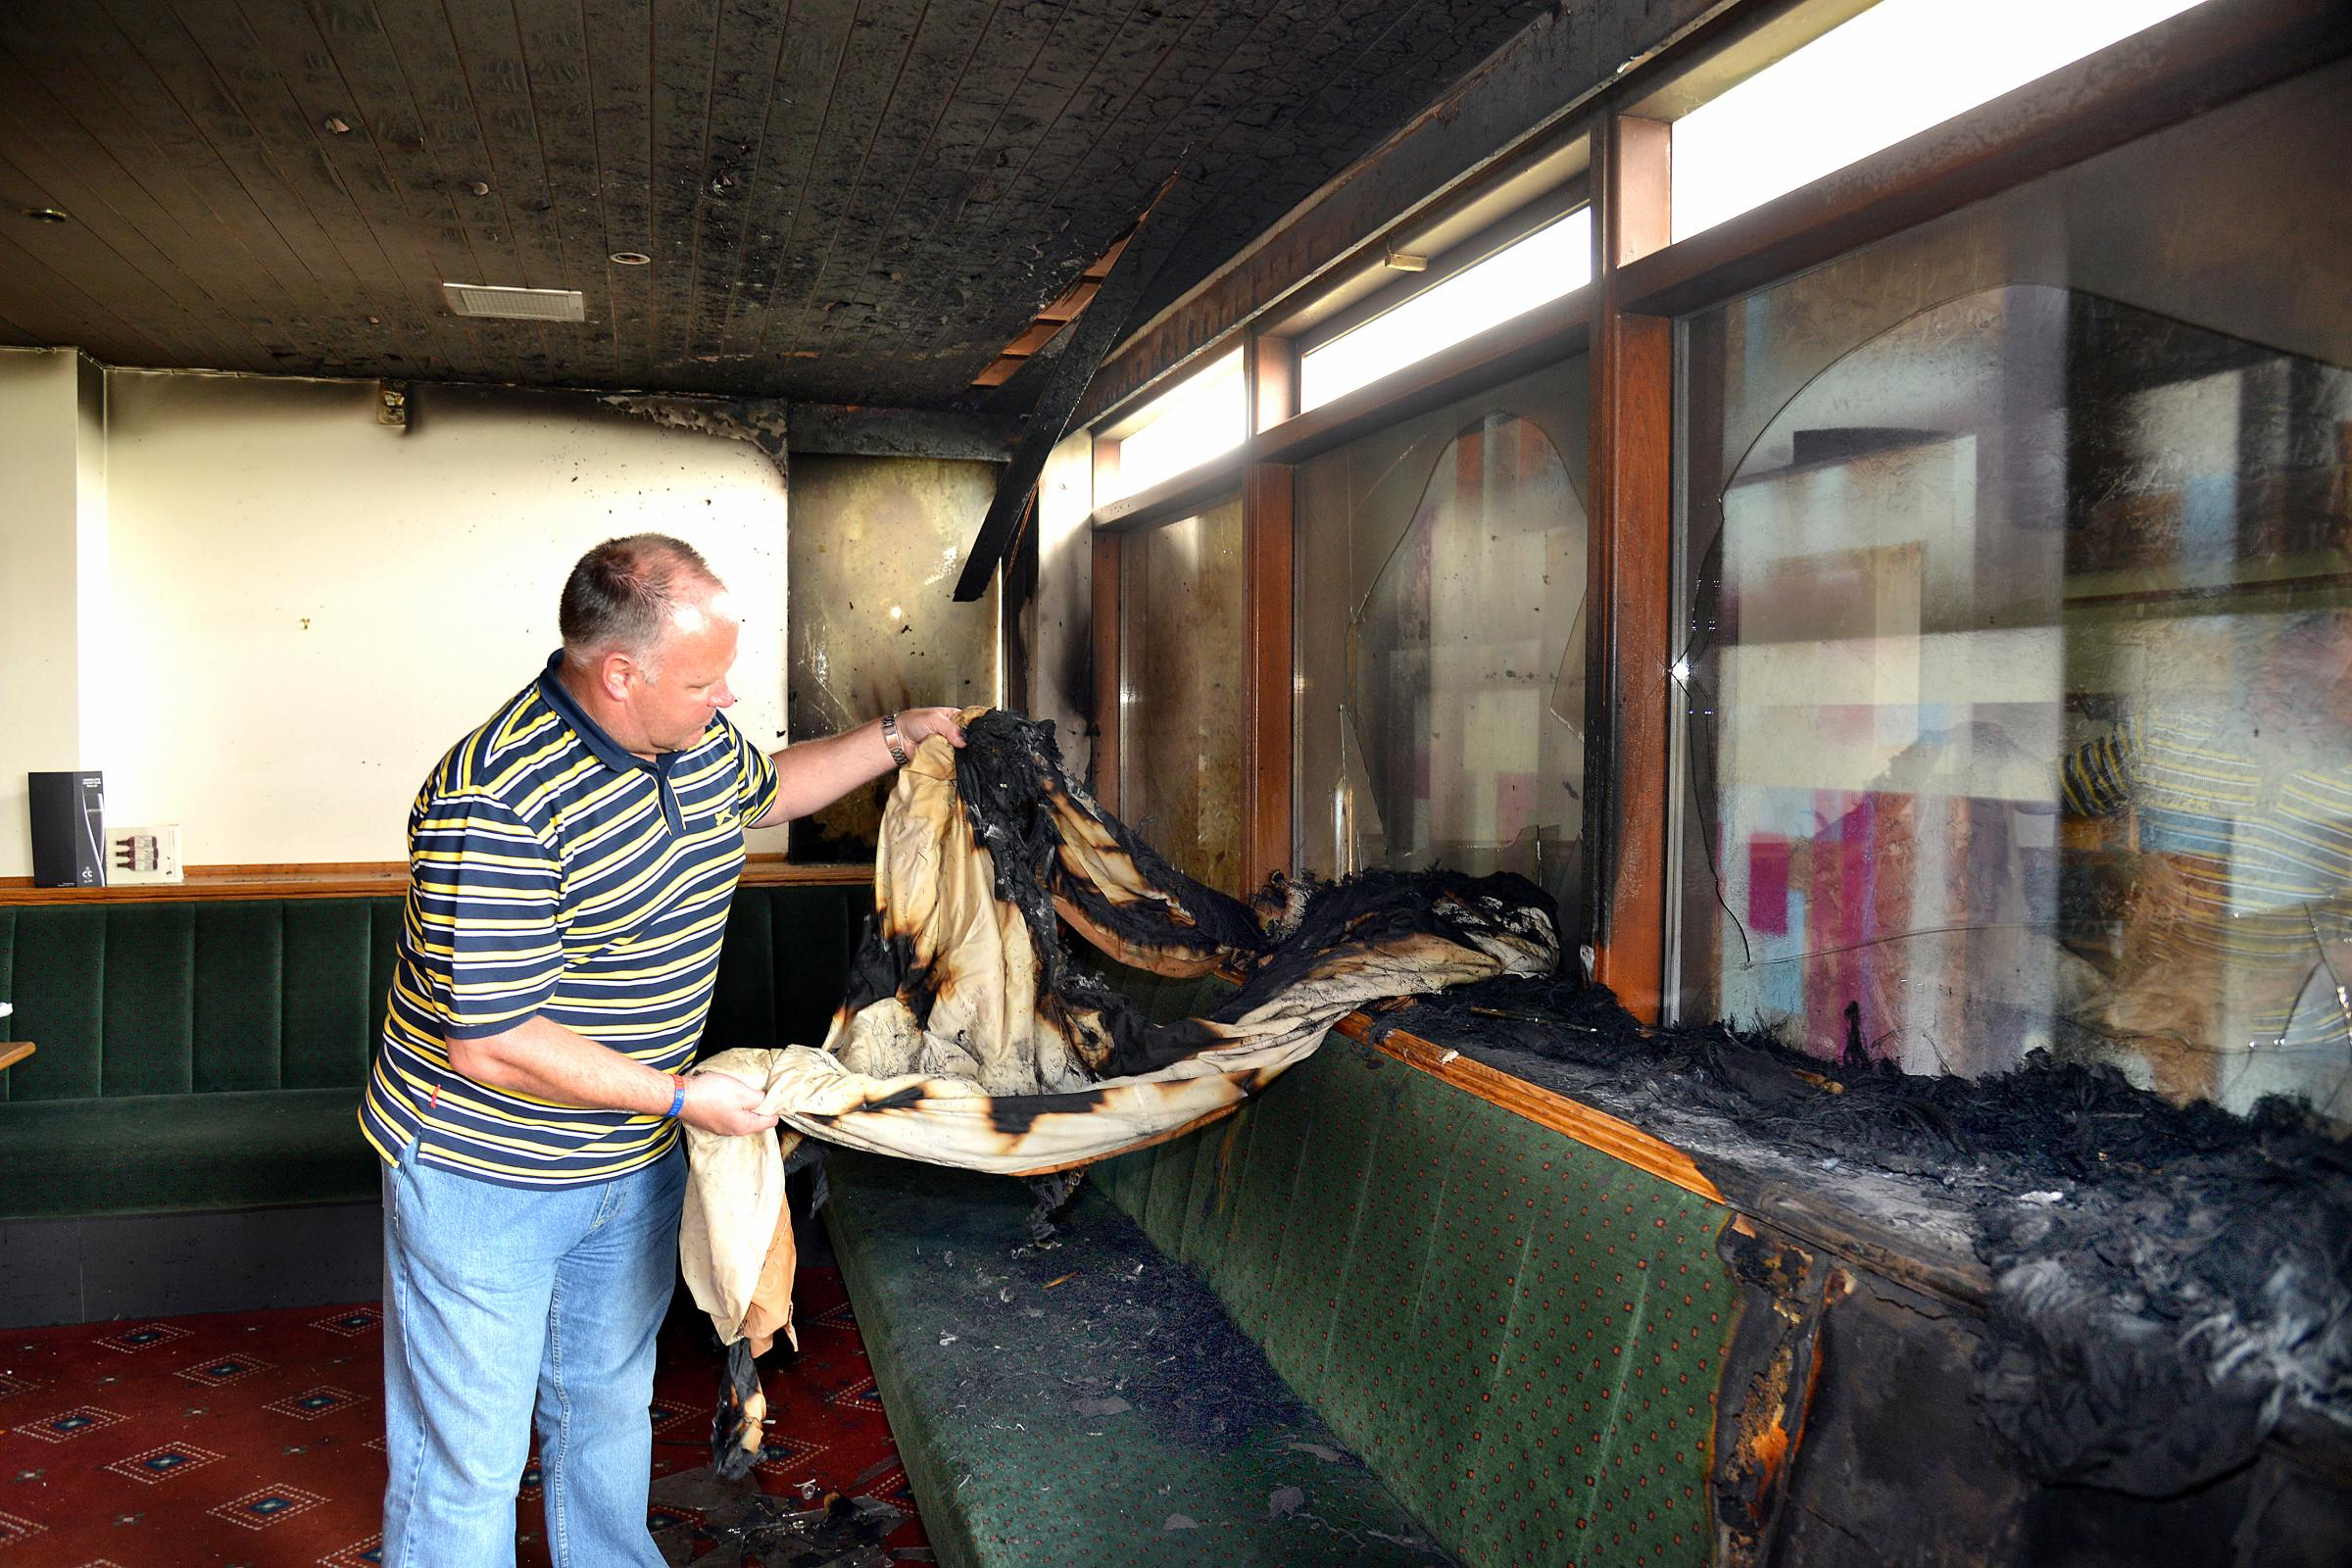 Chris Frost assisstant treasurer at Undercliffe Cricket Club surveys the fire damage caused by vandals at the club